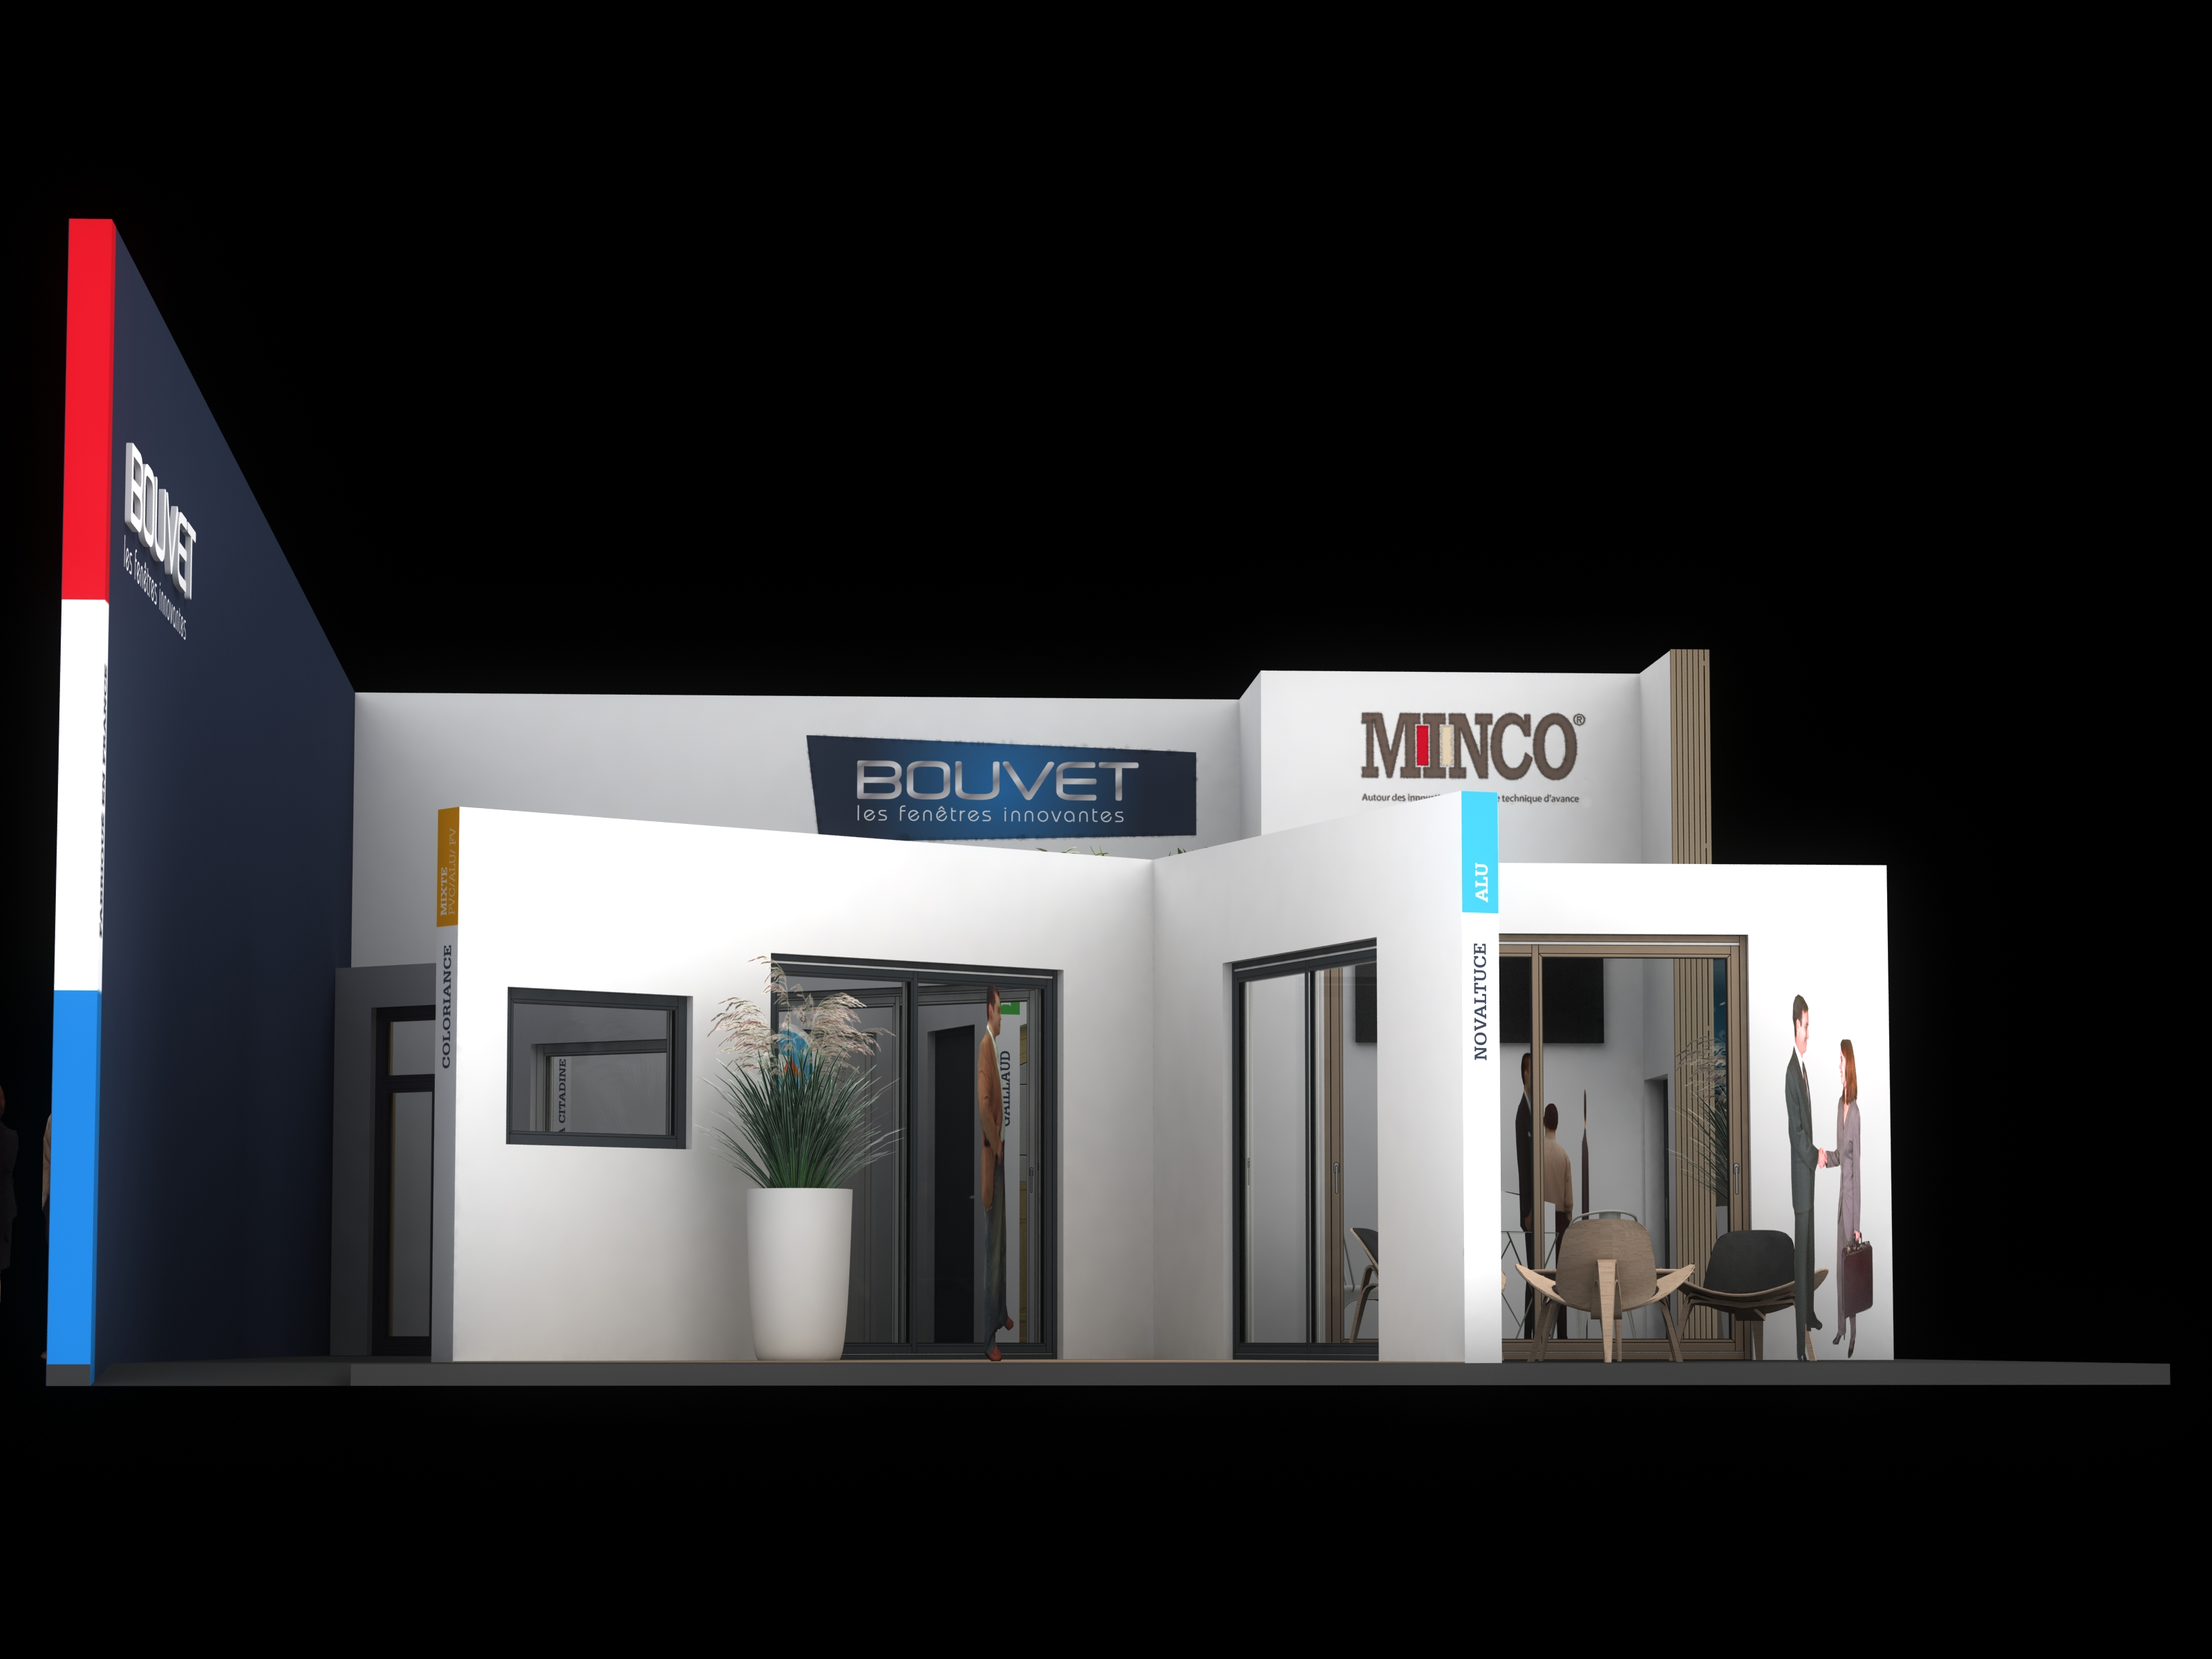 Standiste projet bouvet minco salon equip 39 baie for Menuiserie stand exposition